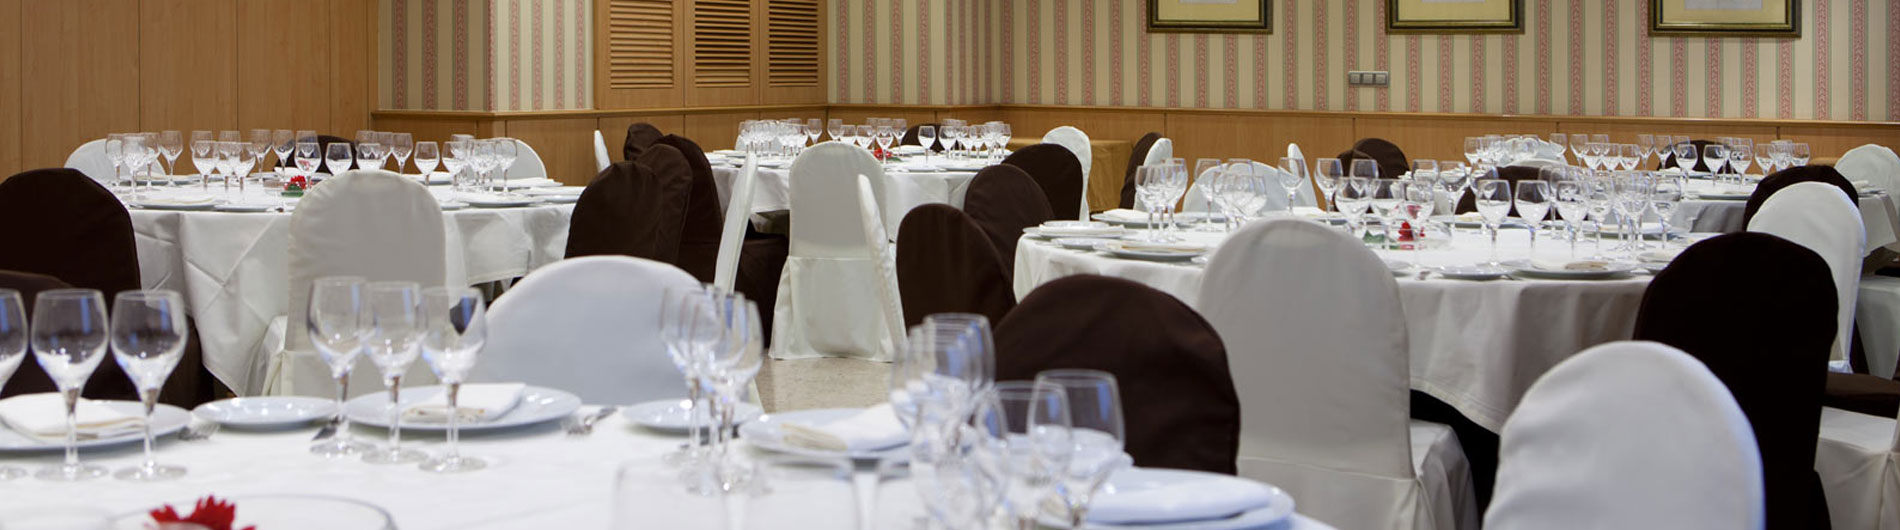 Salones Eventos Madrid Eventos Hotel Praga Madrid Web Oficial